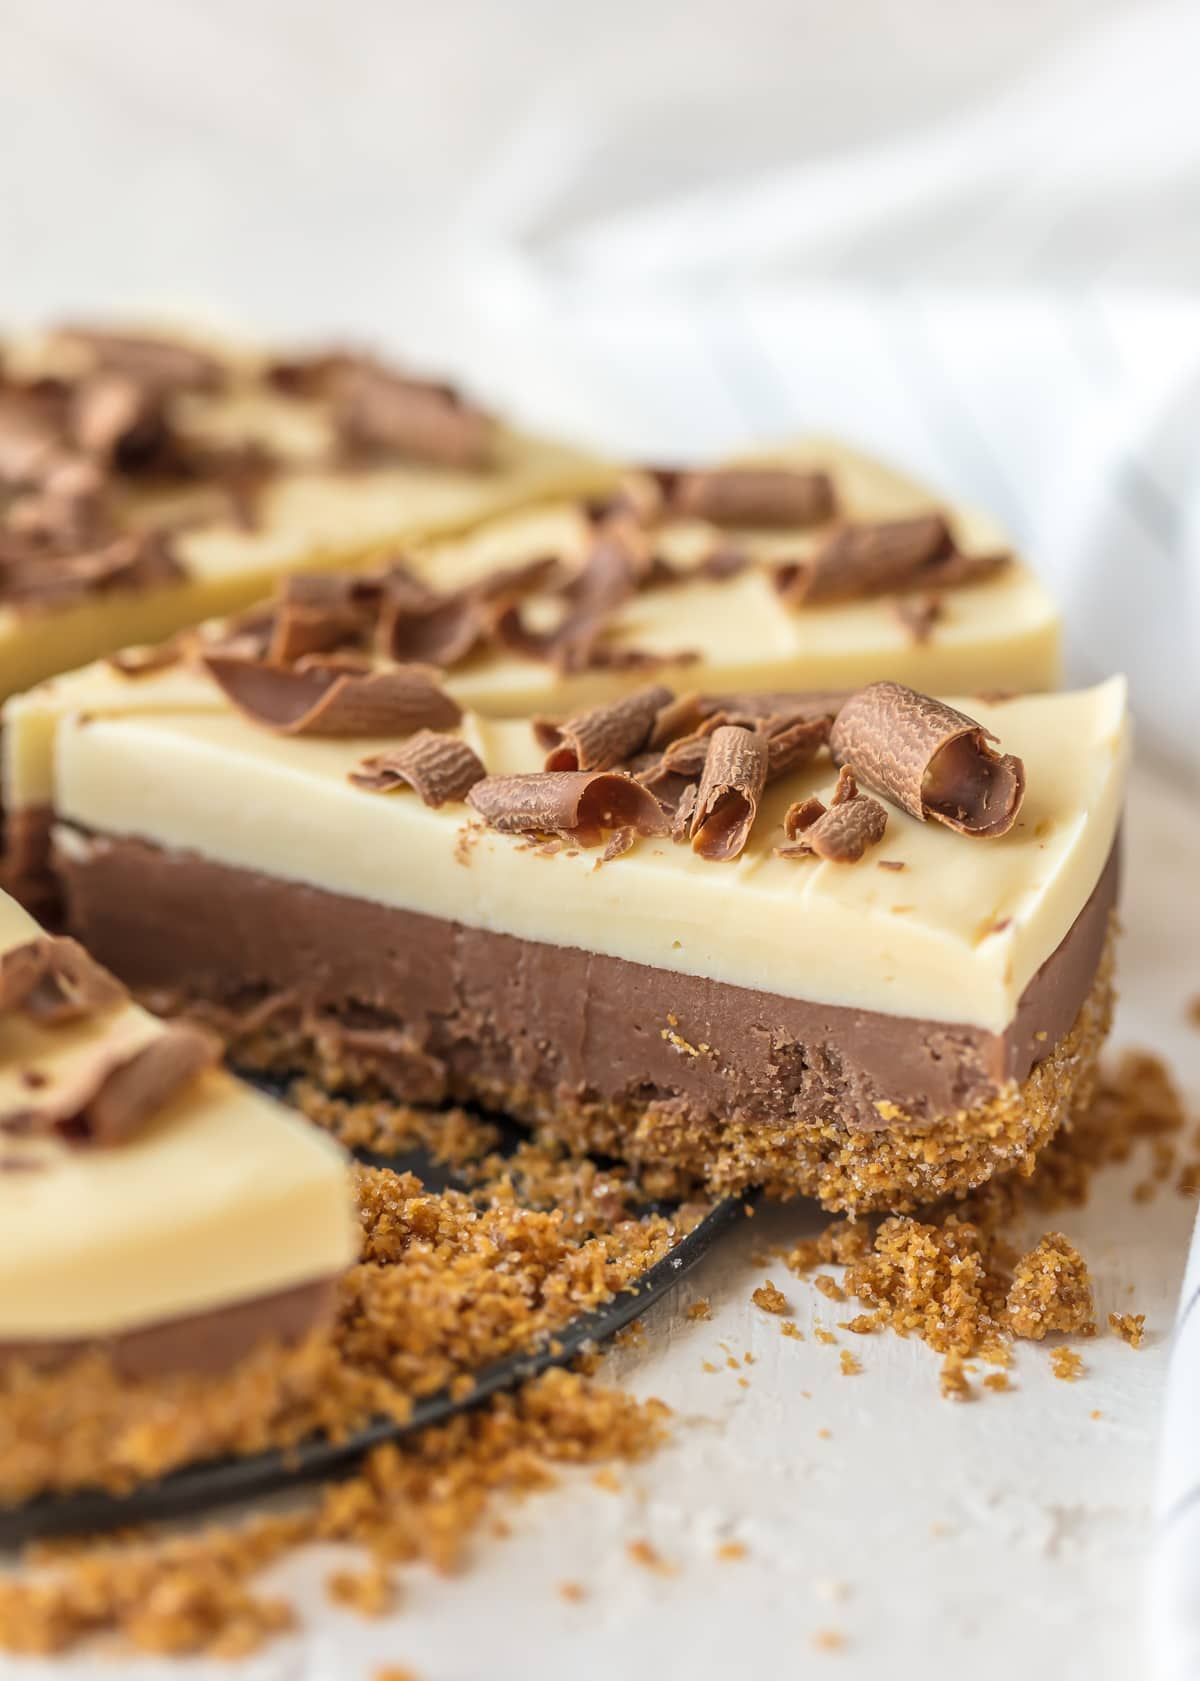 French Silk Pie Fudge topped with chocolate curls